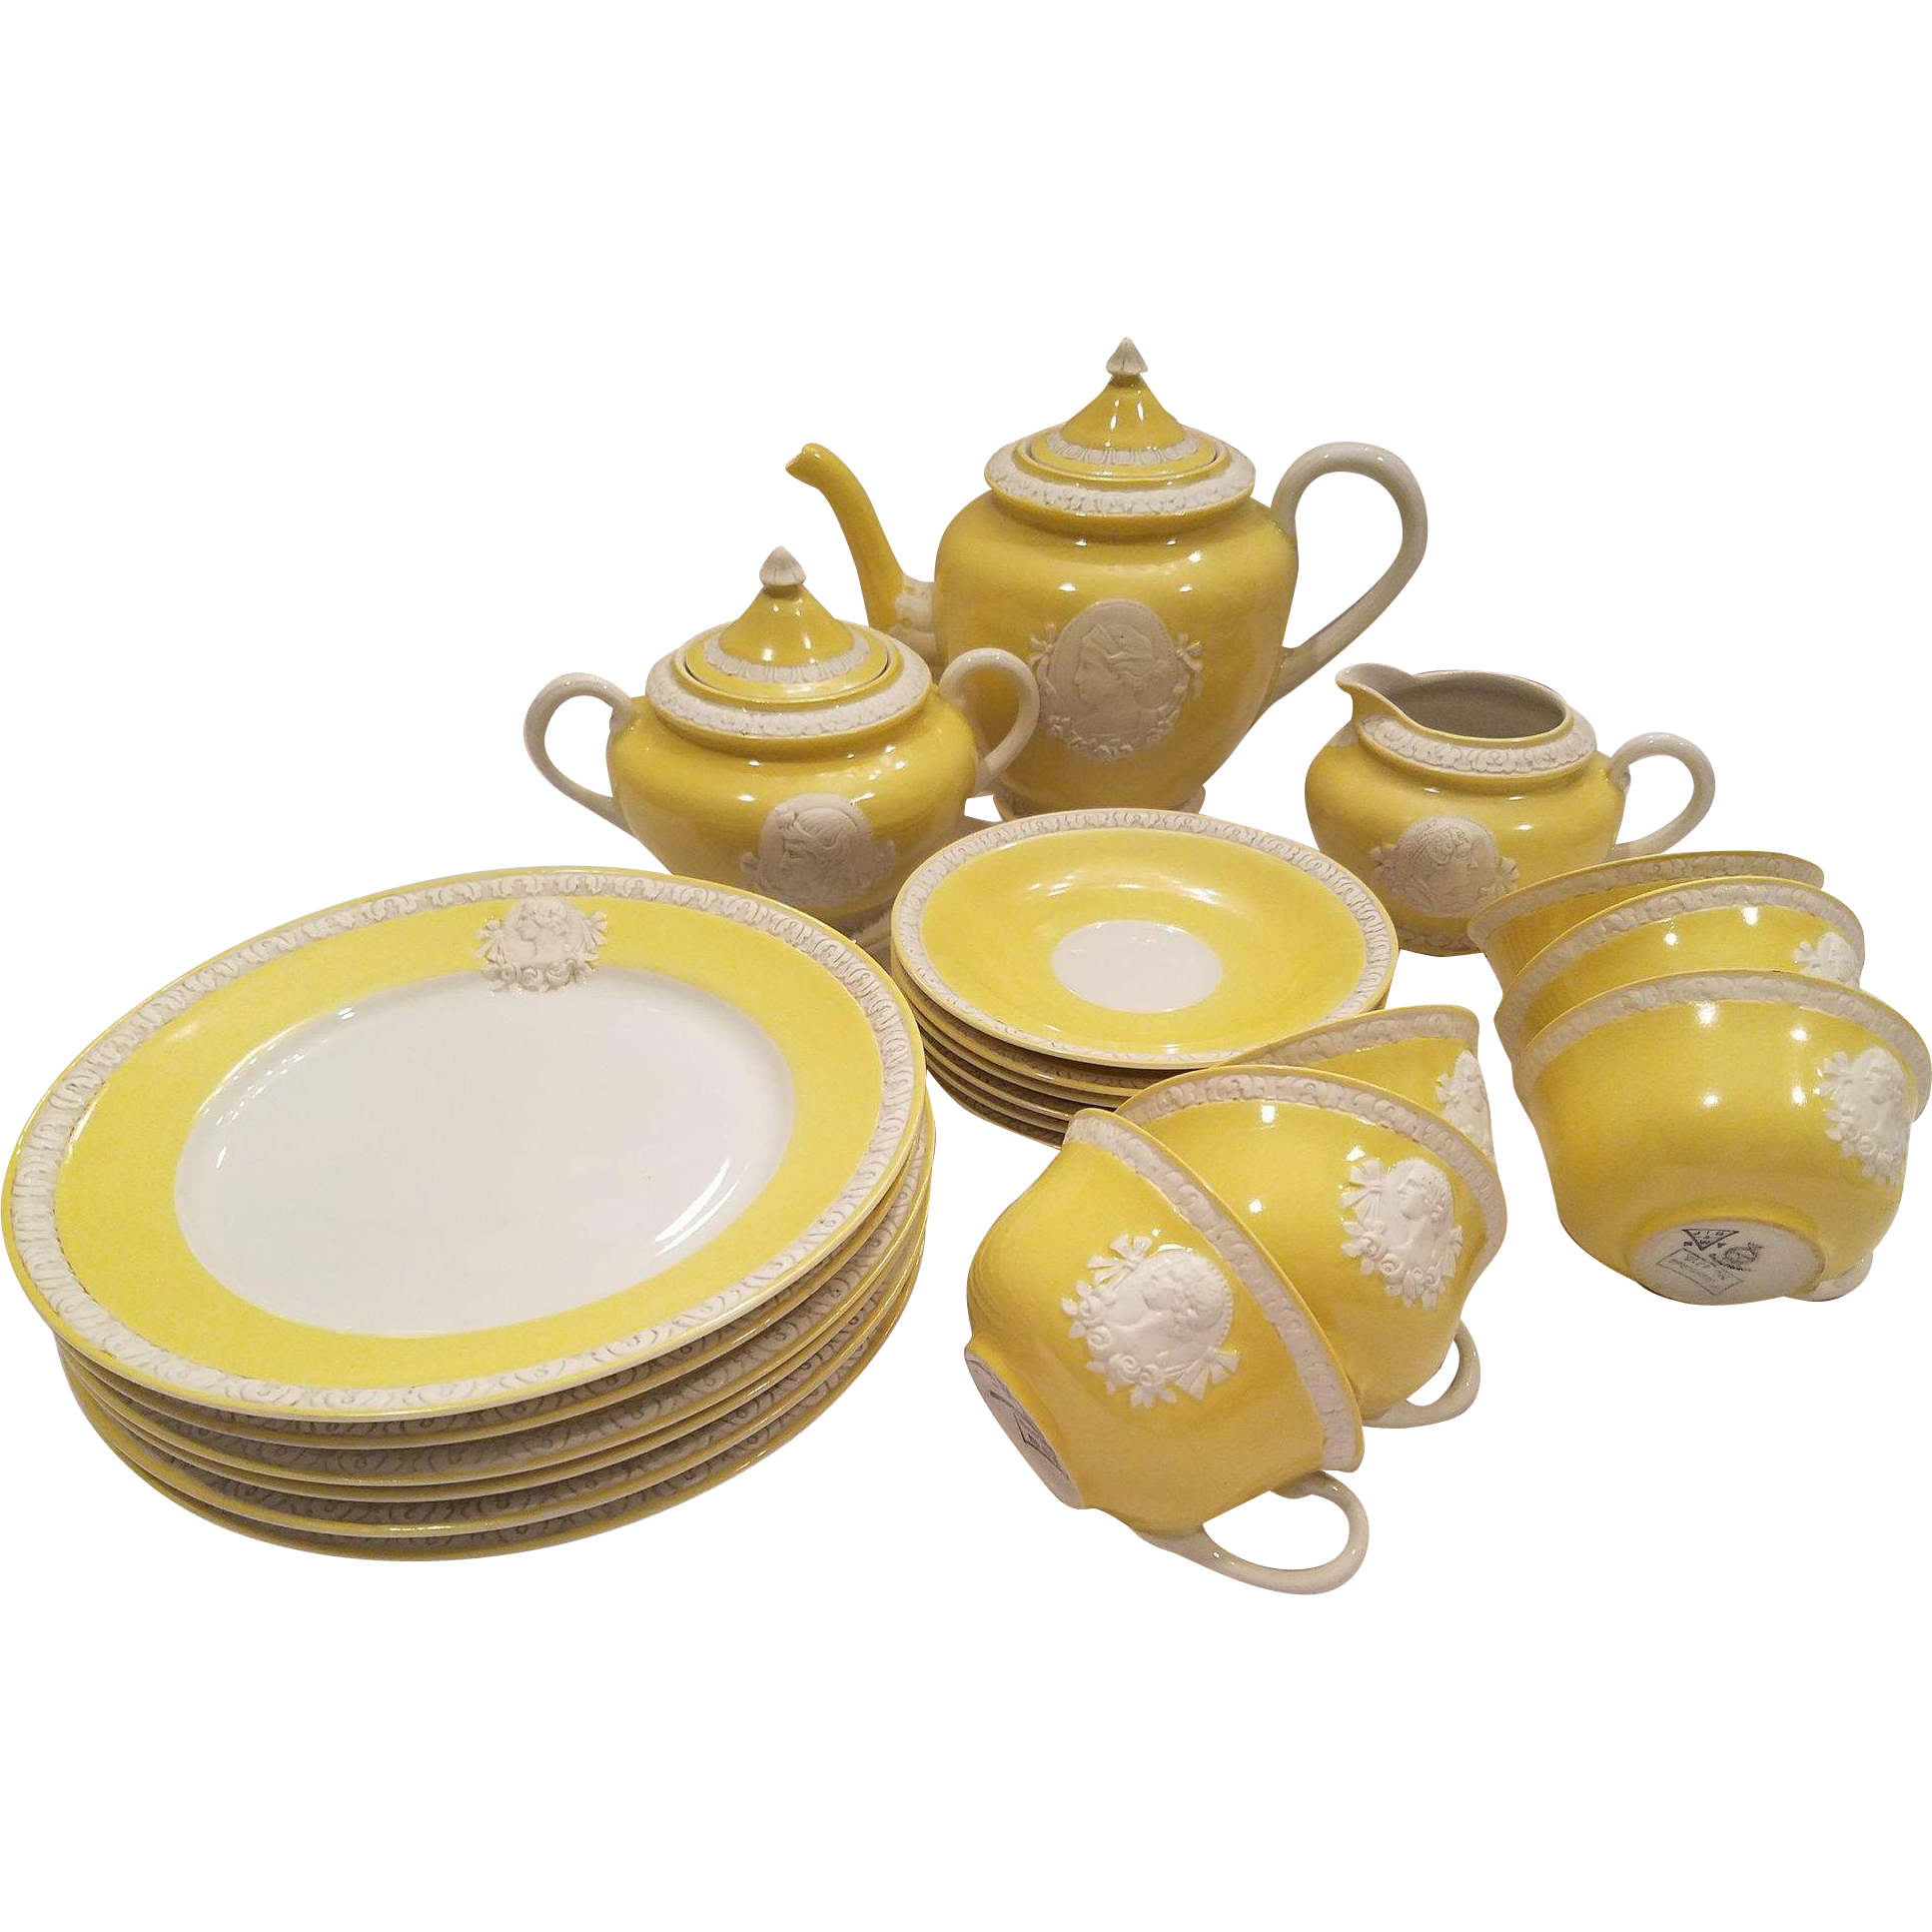 Transparent tea yellow. Dainty musterschutz czechoslovakia union